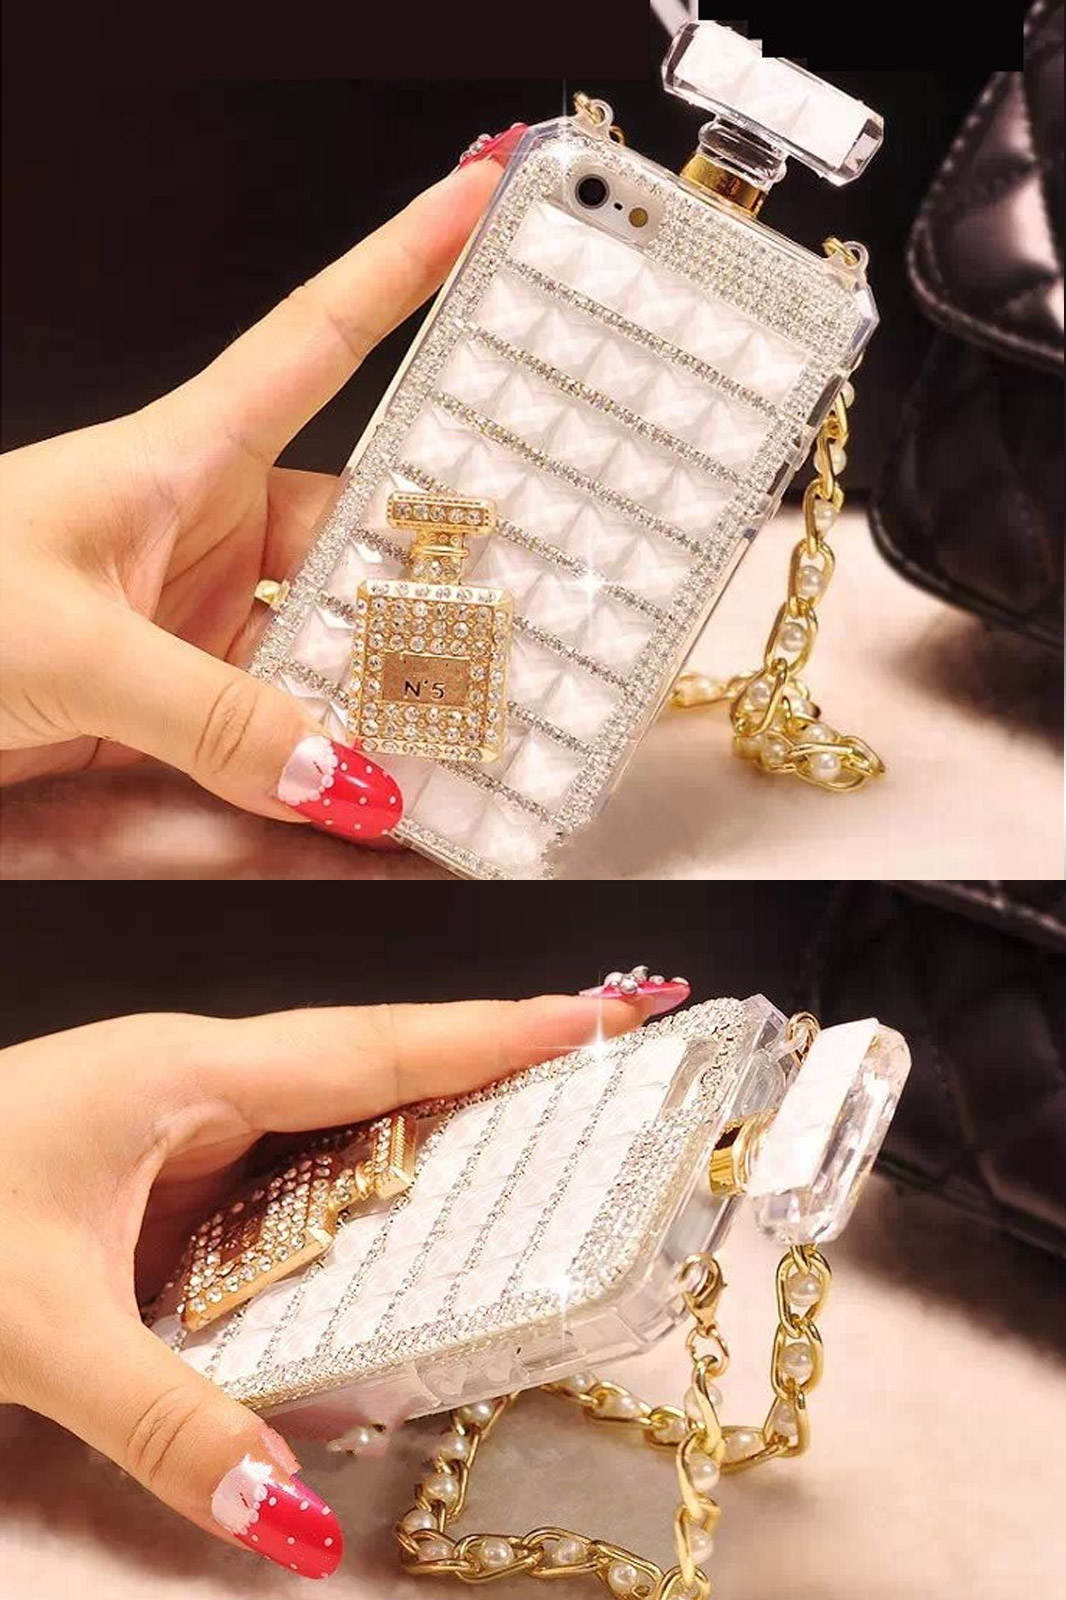 New luxury rhinestone perfume bottles phone case for iphone 6 iphone 6 plus case diamonds bling tpu soft phone cover with chain1